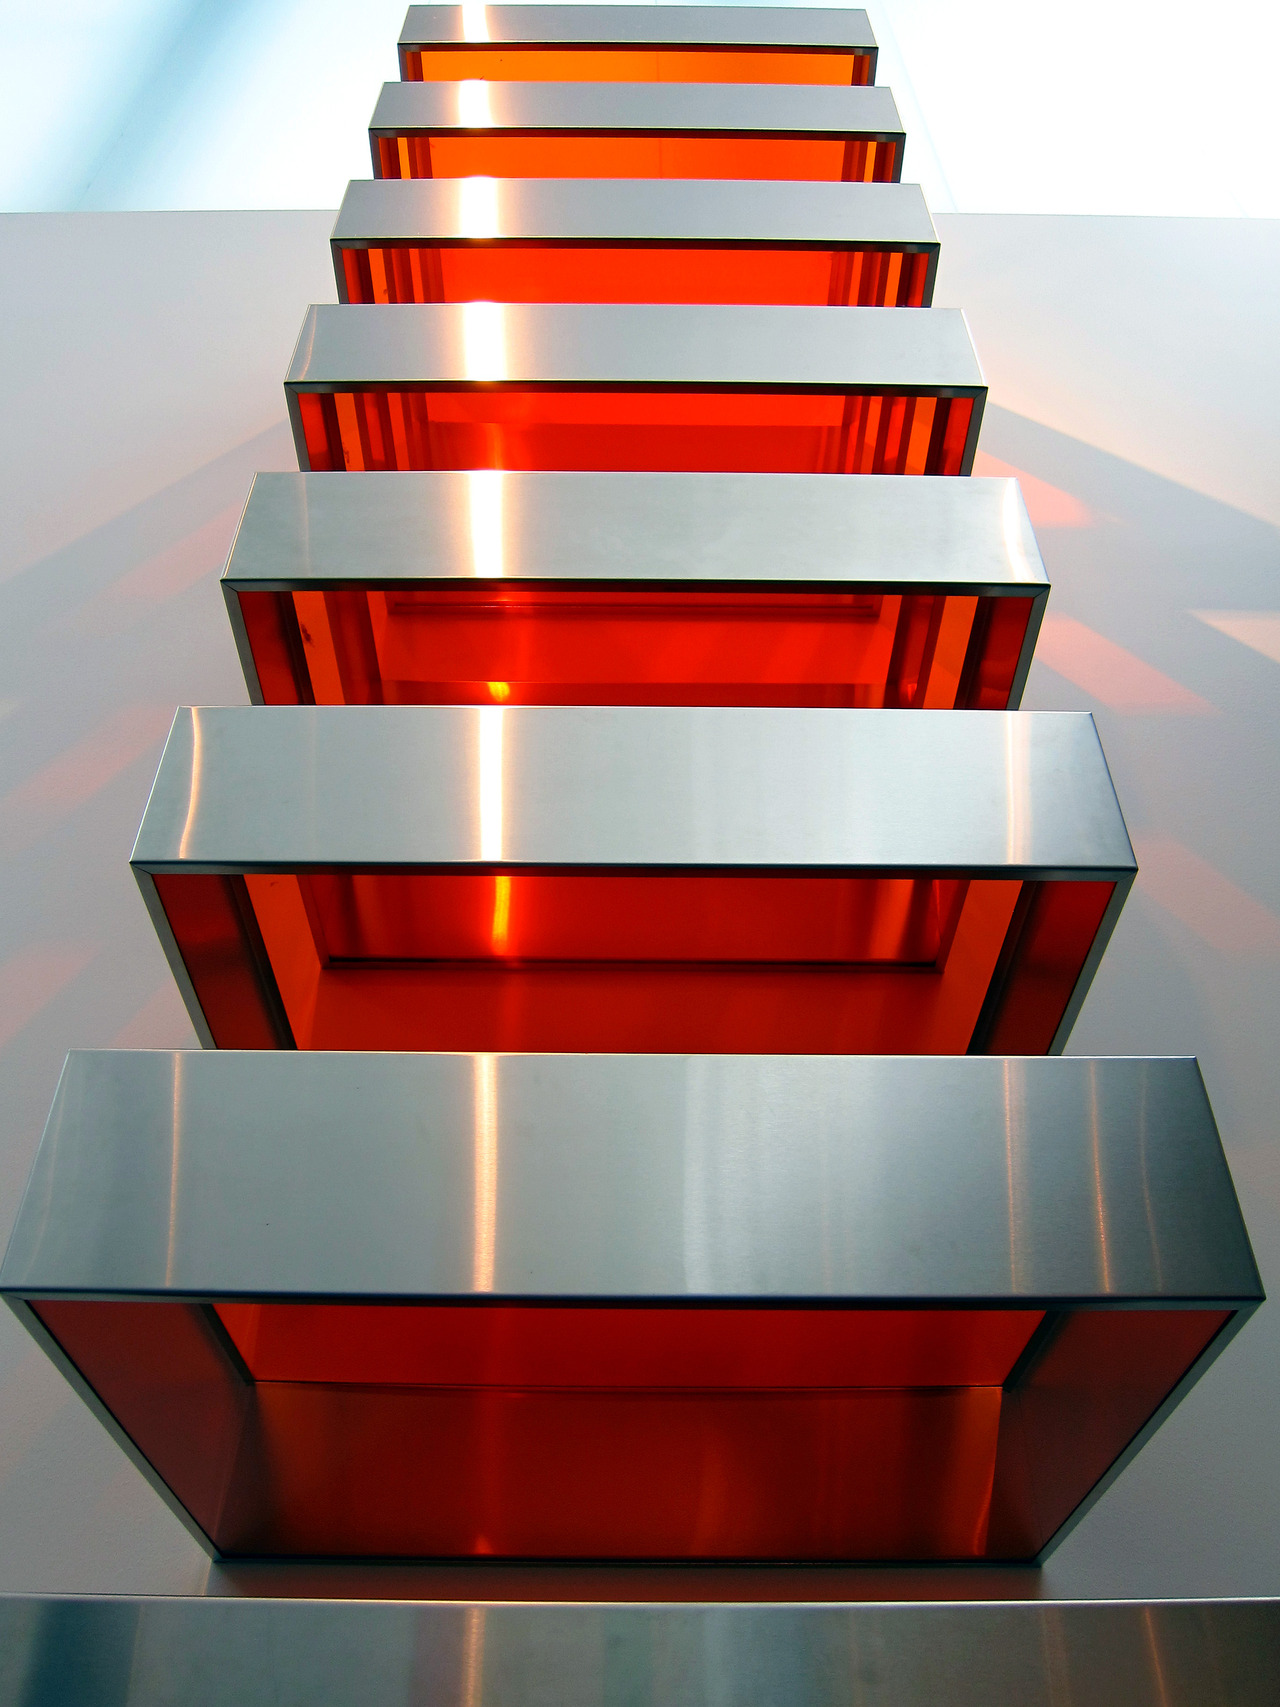 Penccil donald judd sculptures for Minimal art opere